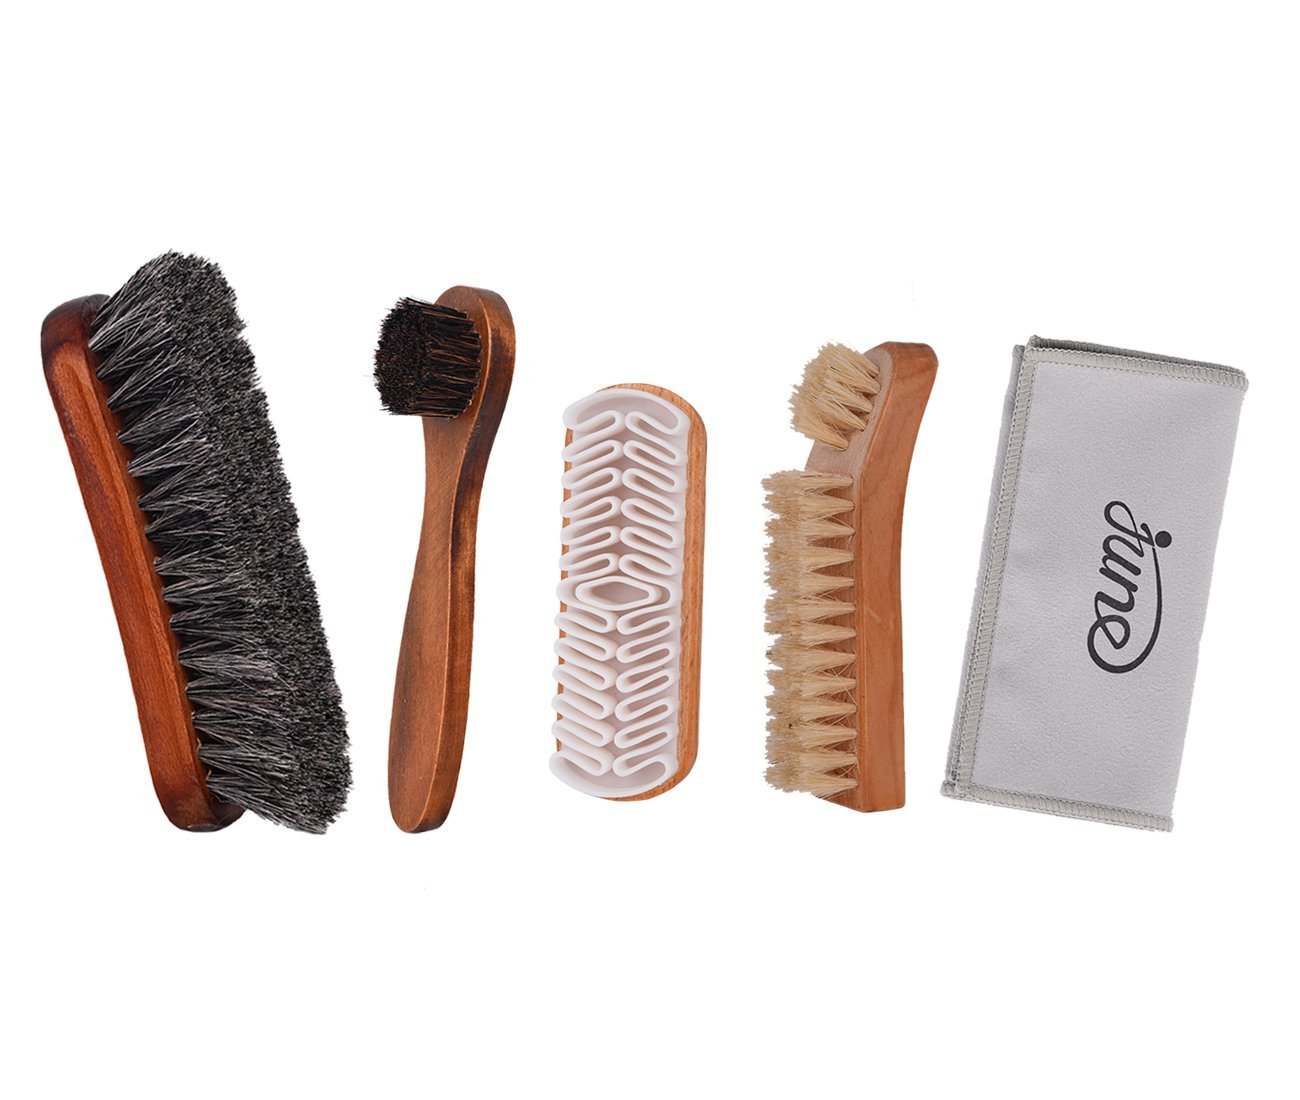 31aca51b4e Get Quotations · Shoe Shine Brush Kit 4 in 1 with Soft Horsehair Bristle  Brush